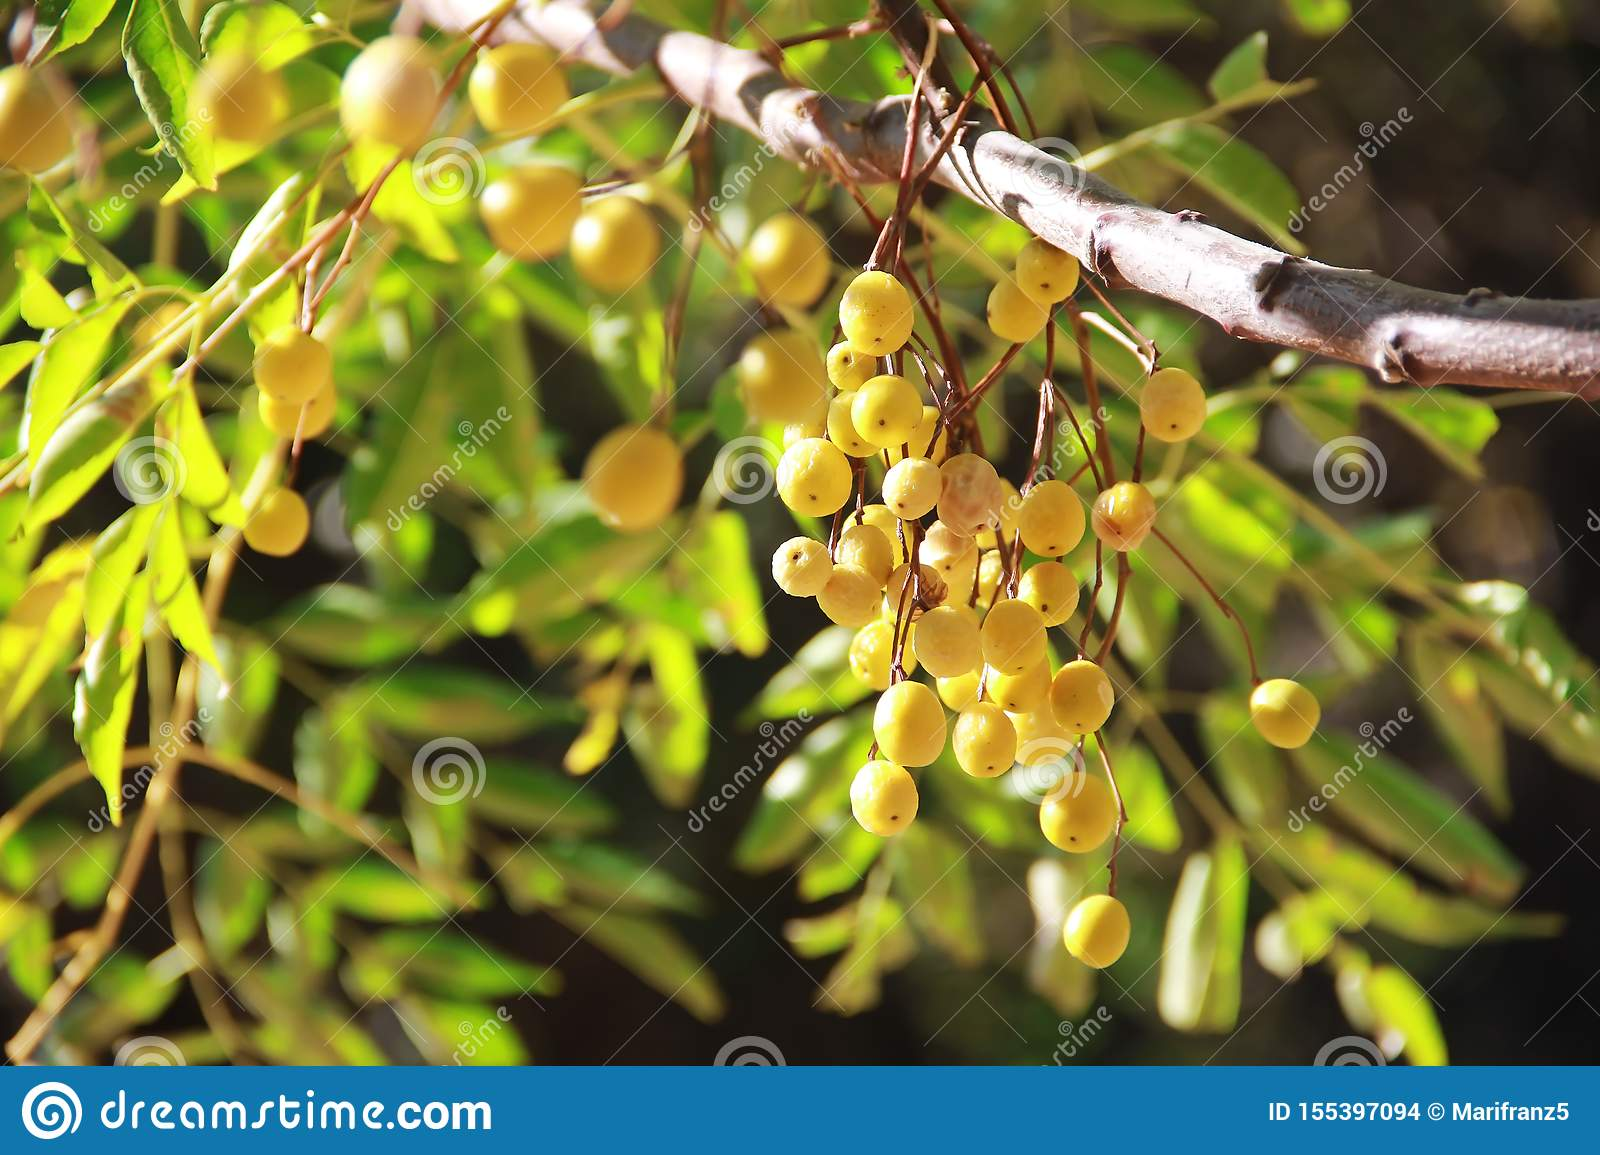 Yellow natural autumn berries sea buckthorn, mountain ash, physalis on a branch